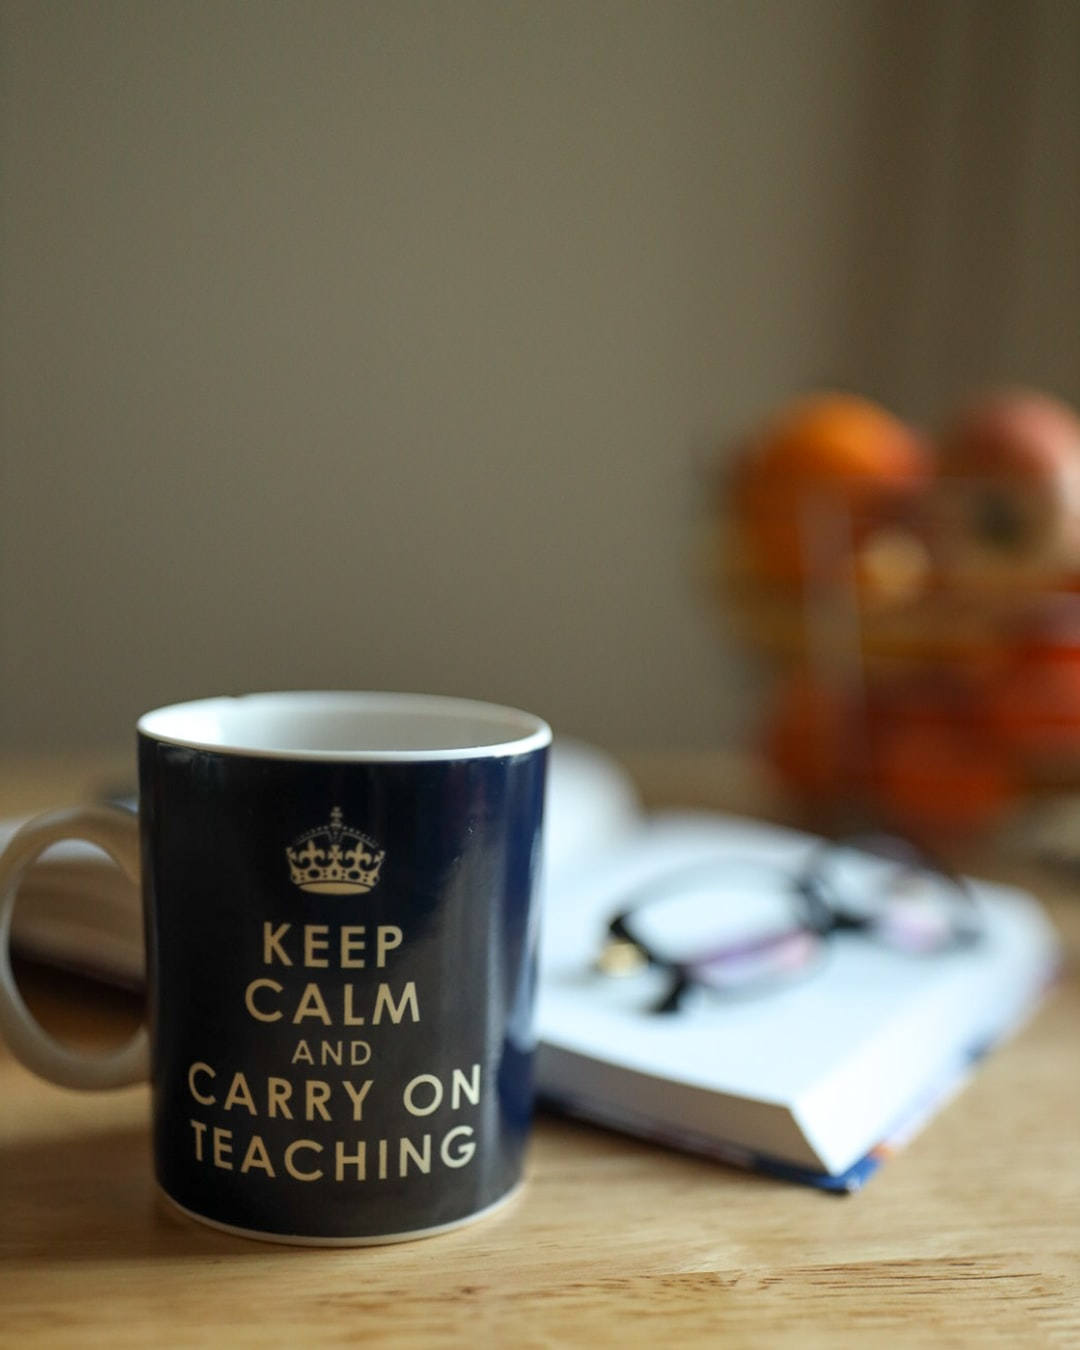 A mug stating 'Keep Calm and Carry on Teaching' in front of a diary and glasses